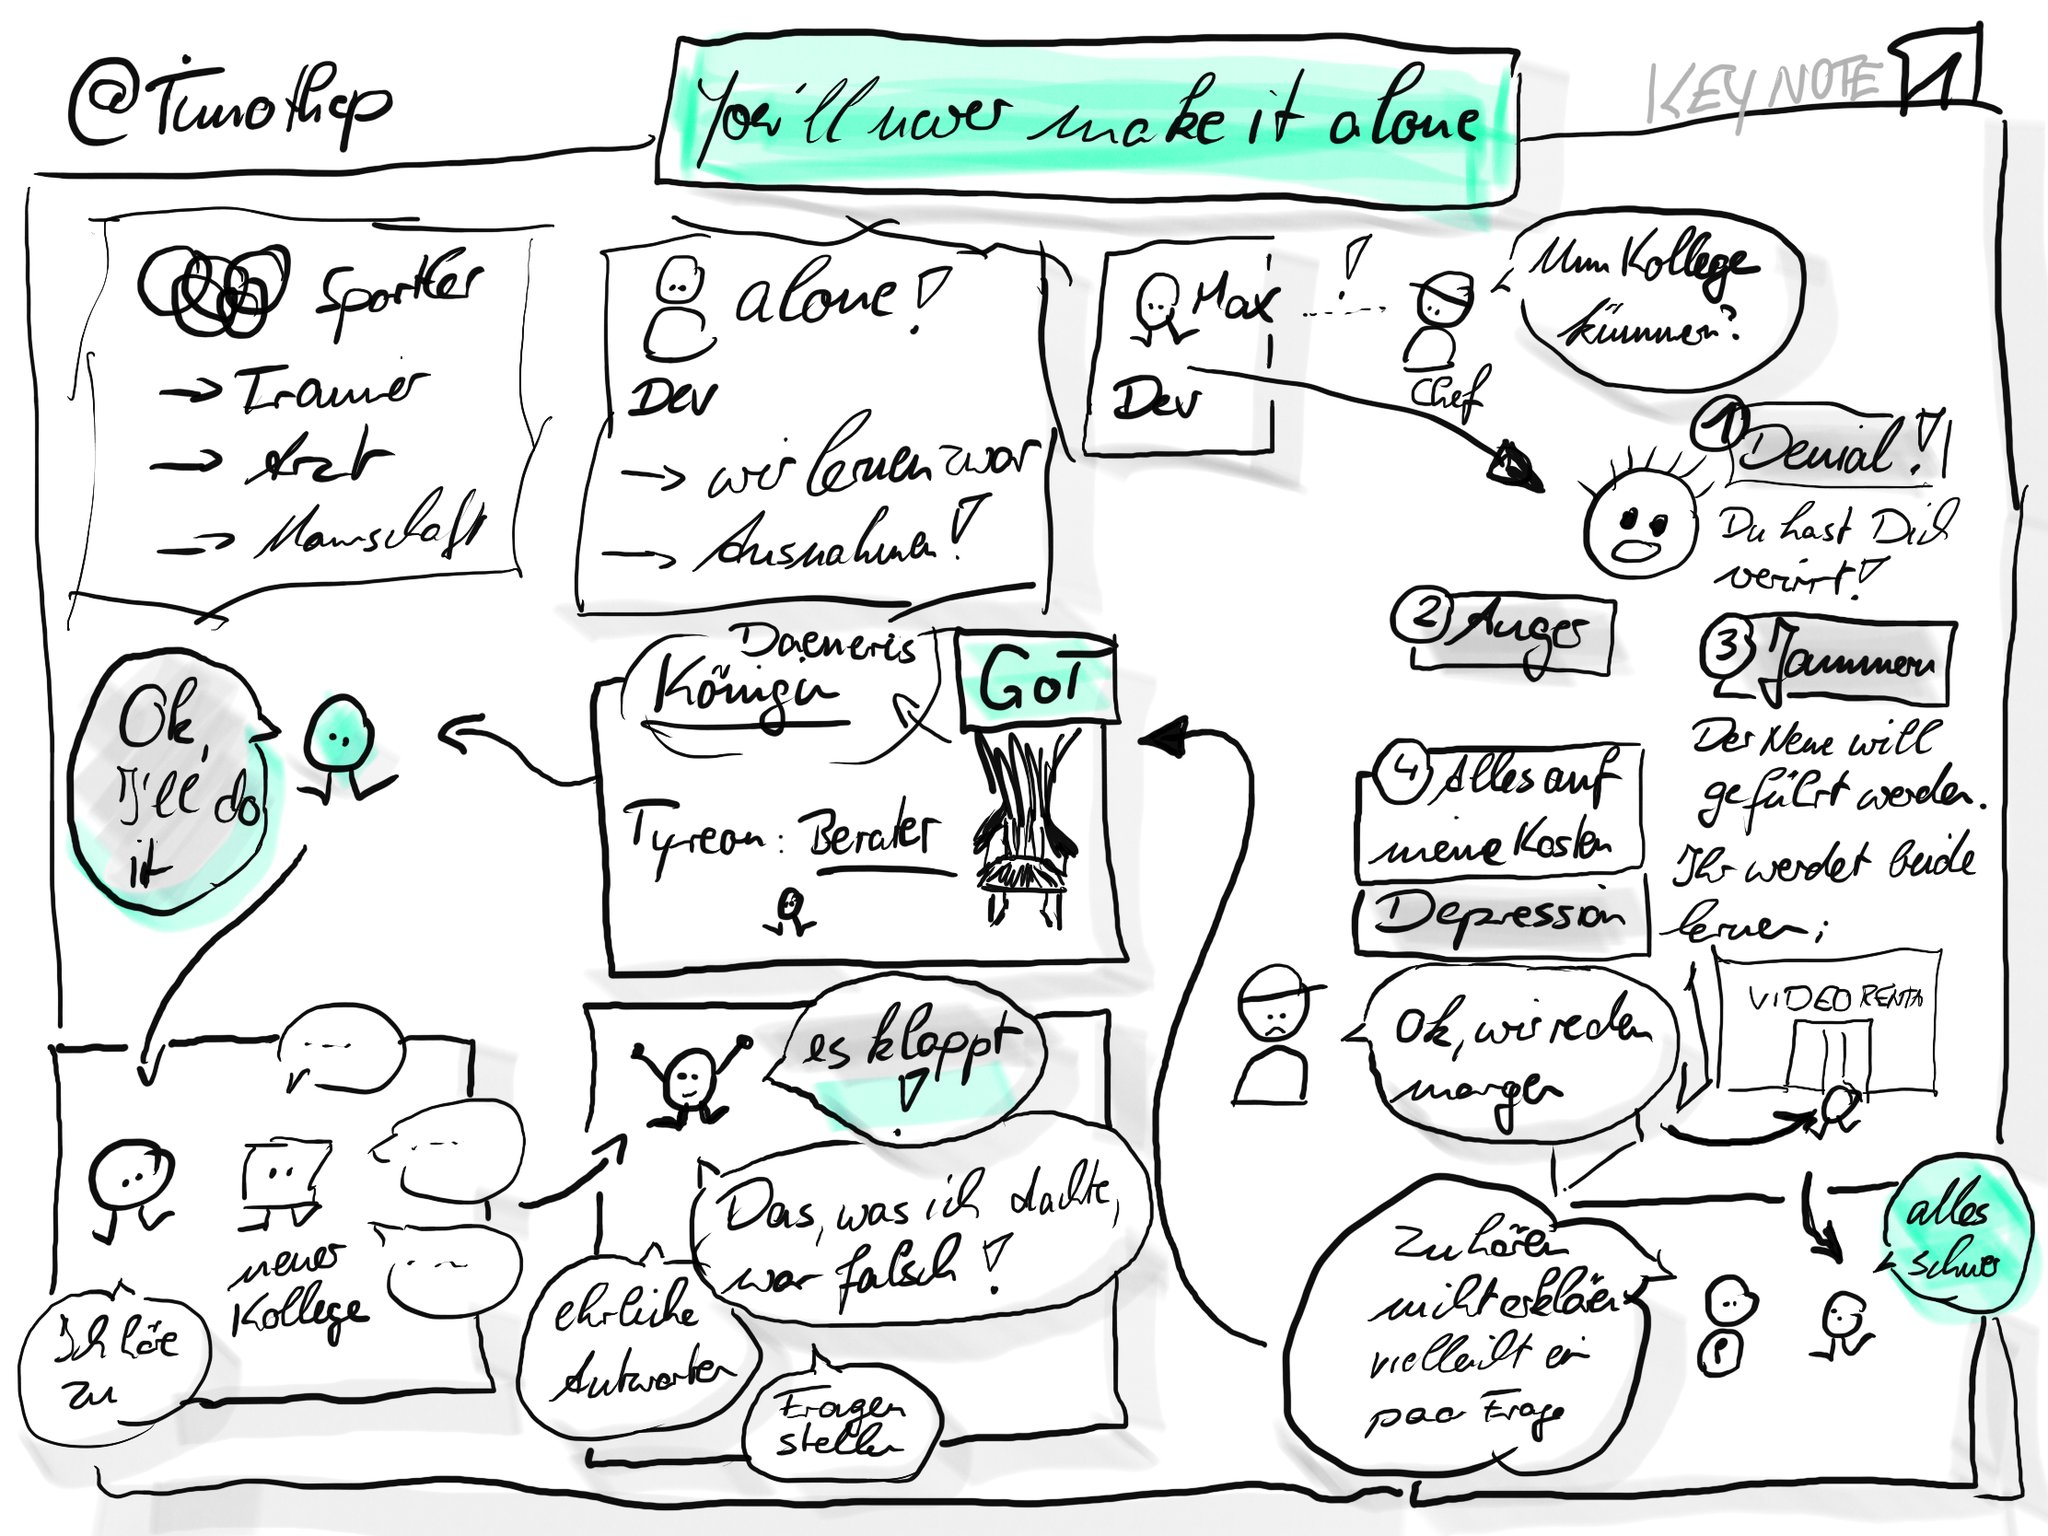 Sketchnote of the first half of the talk